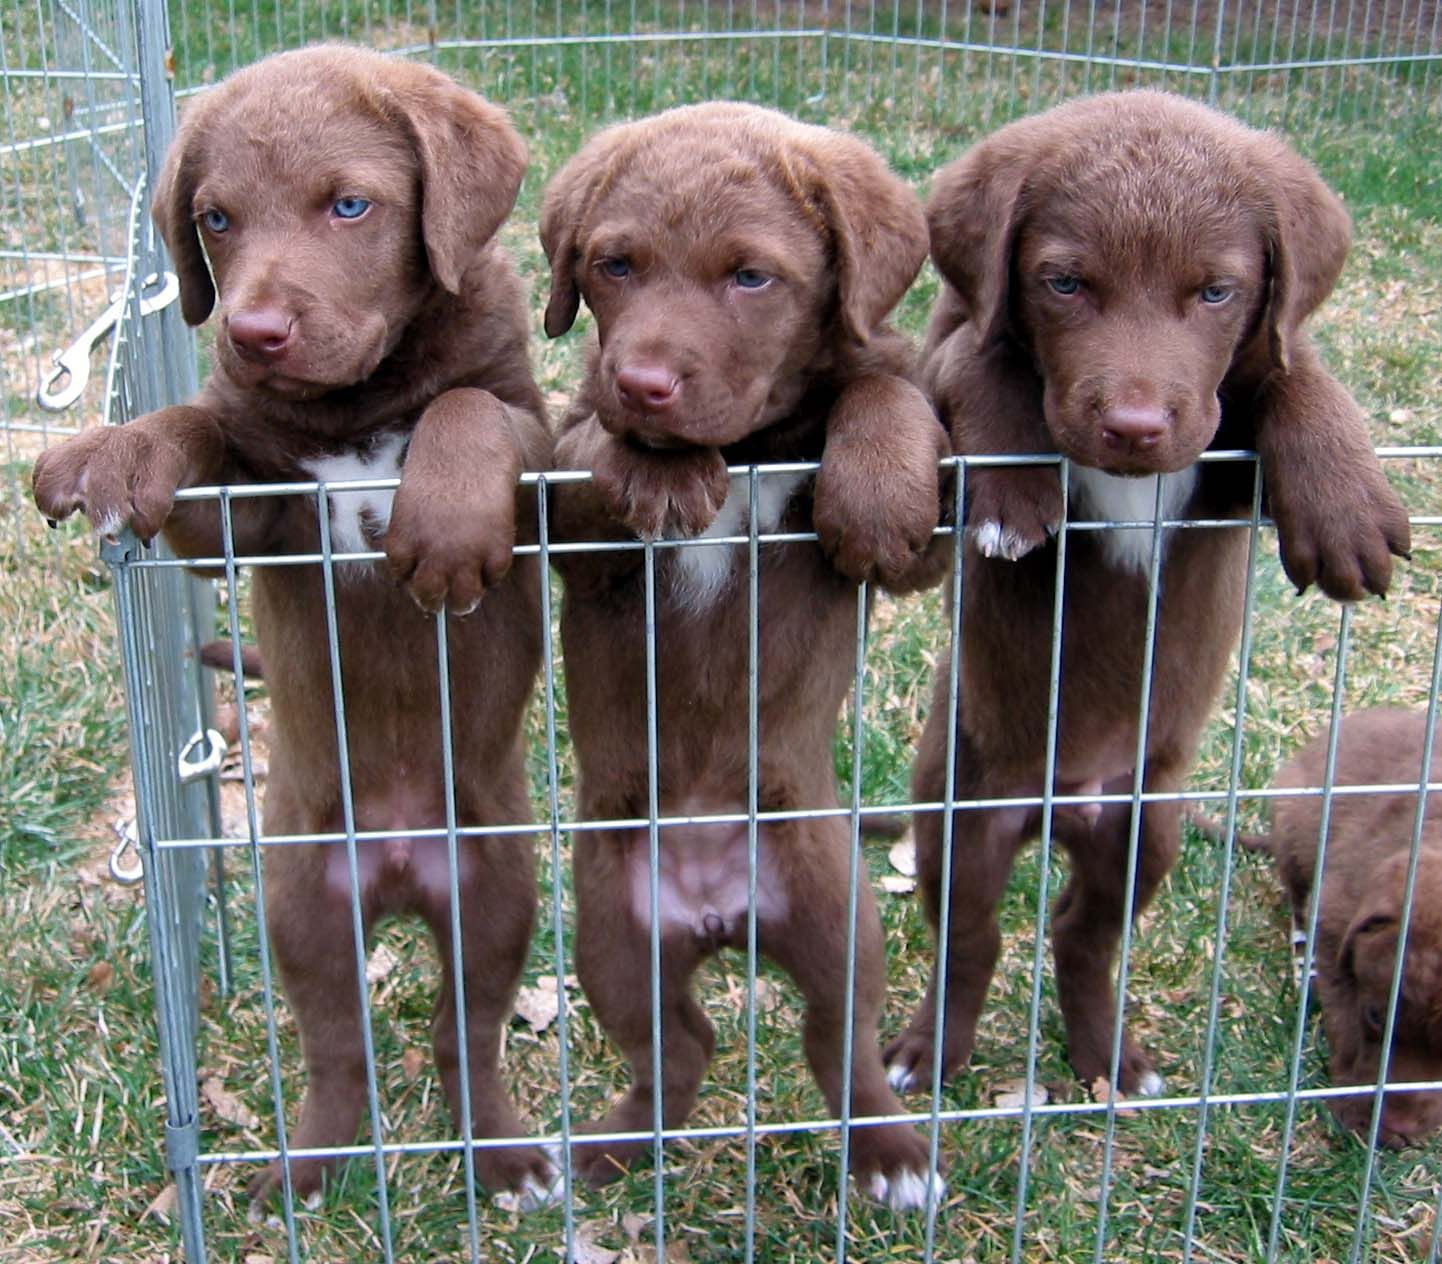 Chesapeake Bay Retriever Profiles And Pictures Dog Breeders Chesapeake Bay Retriever Puppy Chesapeake Bay Retriever Dog Breeds